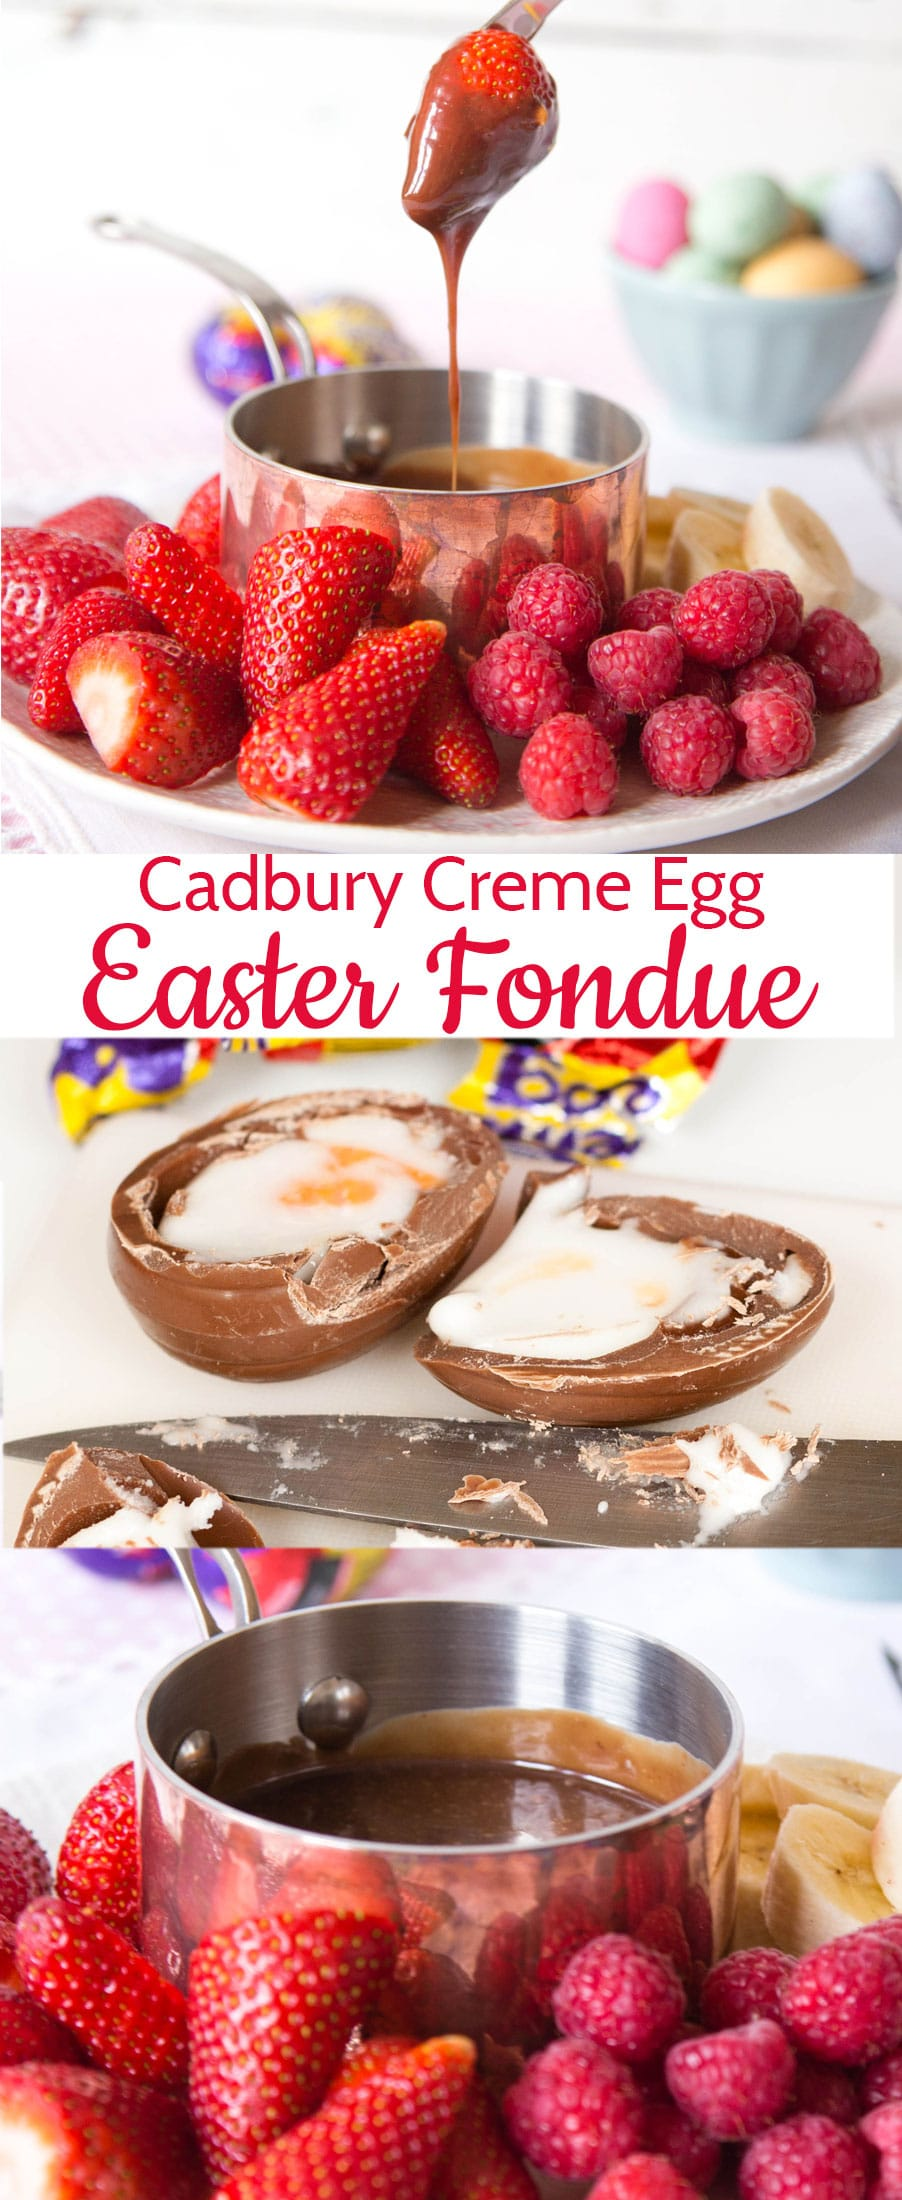 A bright red strawberry dipped in Cadbury creme egg fondue, a Cadbury creme egg cut in half, and a close up of the smooth fondue with text overlay.